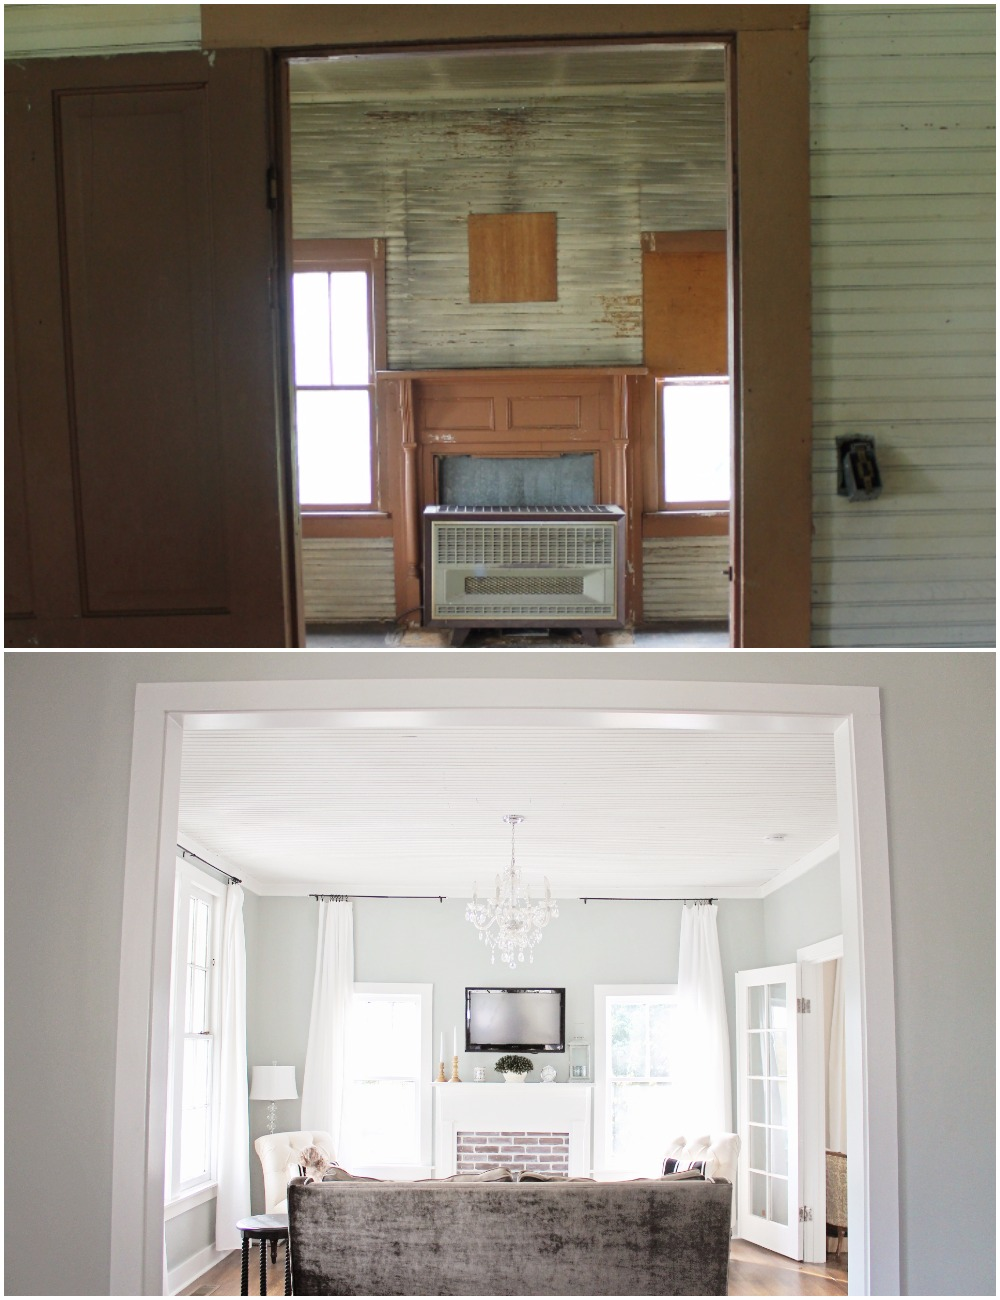 Elizabeth Burns Design  Budget-Friendly Fixer Upper Farmhouse Before and After House Flip - DIY Living Room with Faux Fireplace and French Doors - Sherwin Williams Magnetic Gray (3).jpg